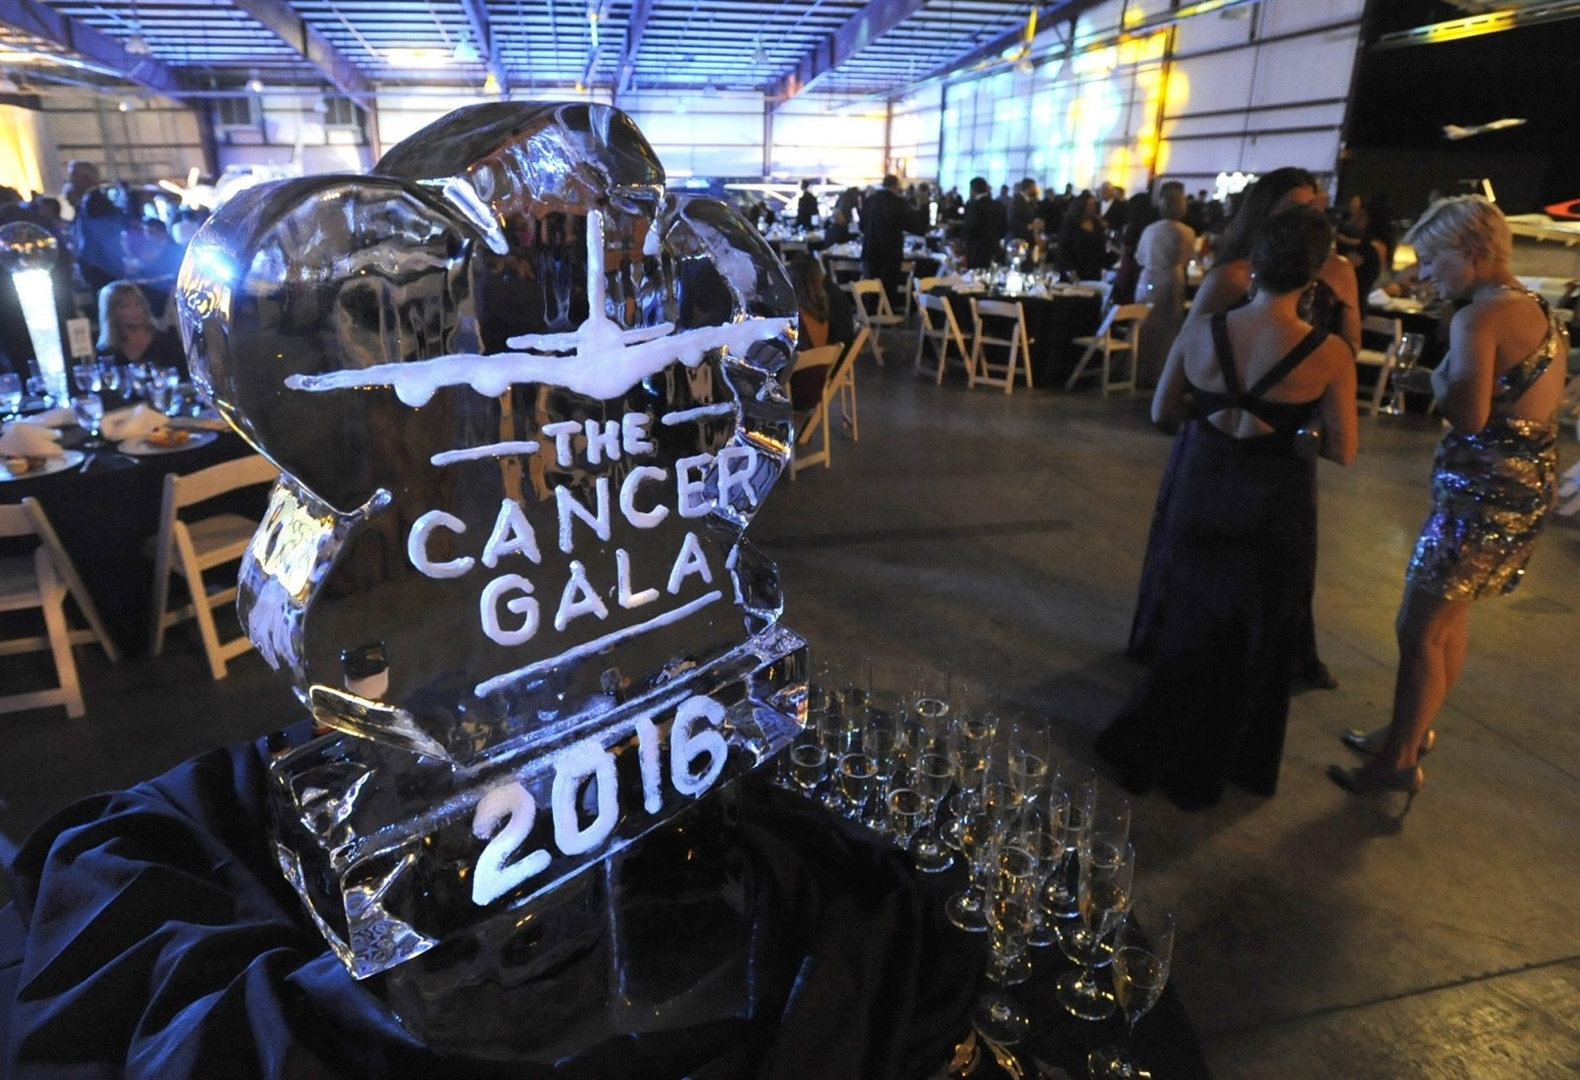 American Cancer Society: Cancer Gala